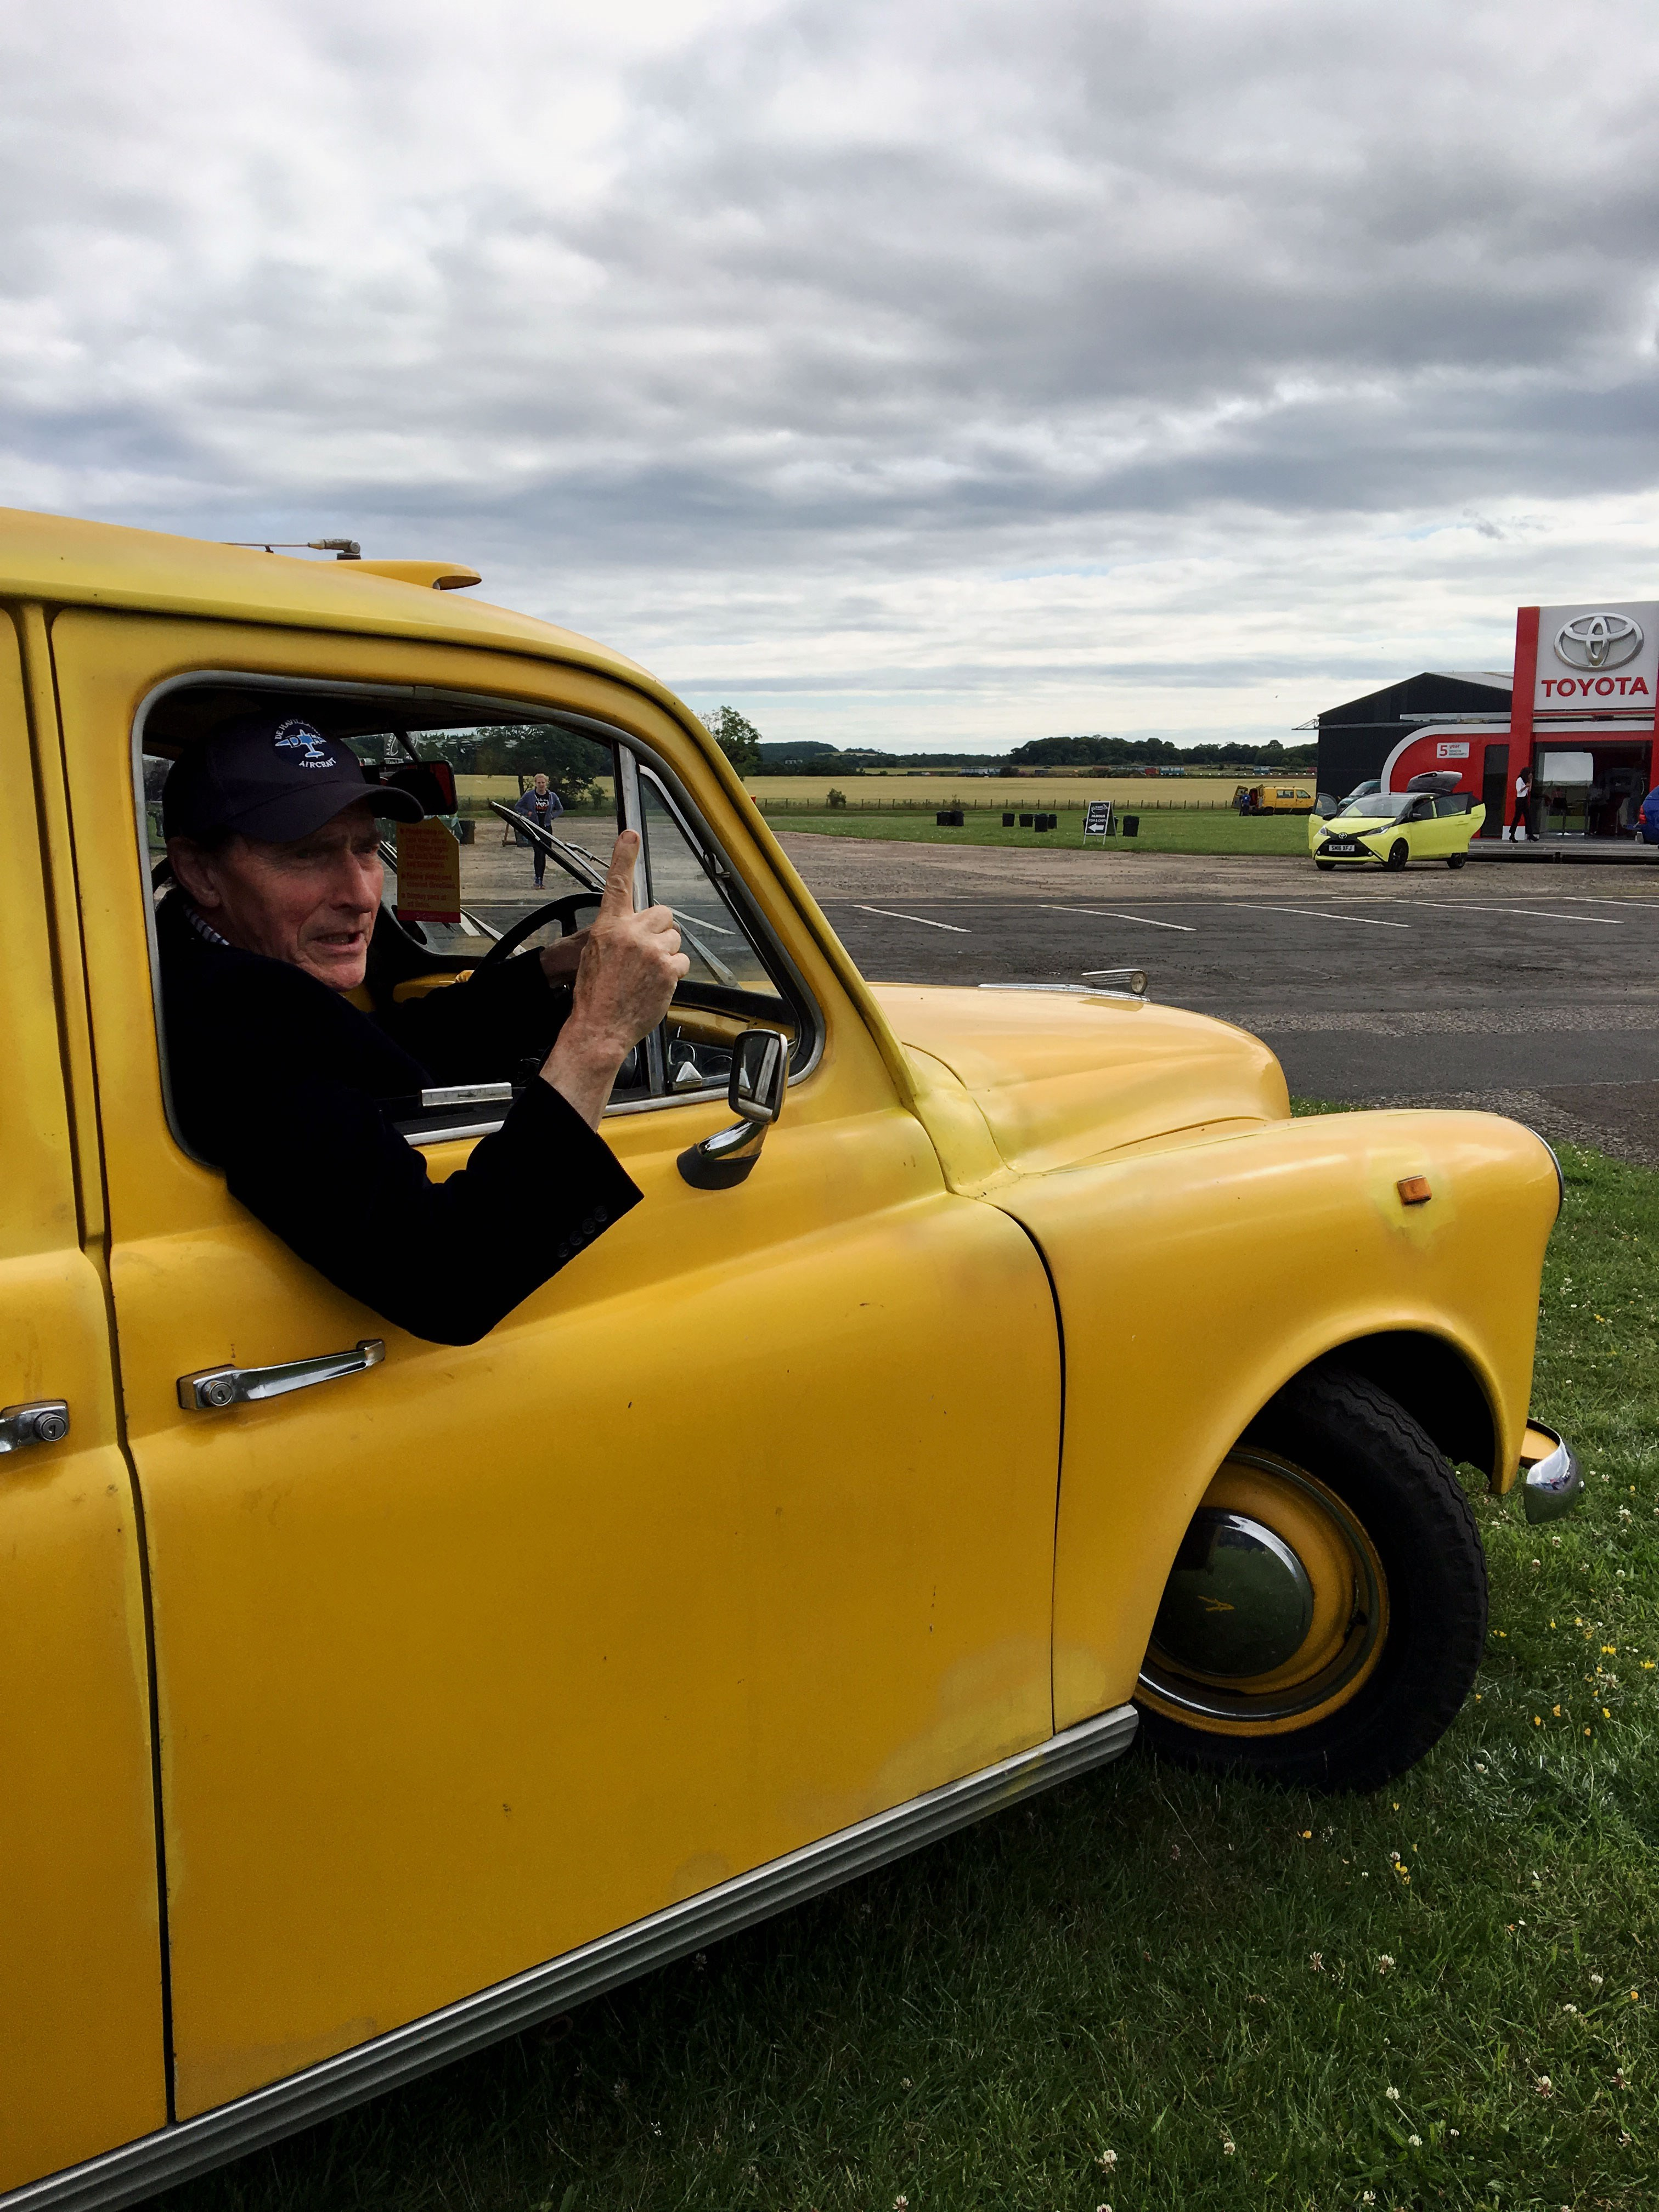 Taxi! Gregor and his yellow taxi on the ground at Scotland's National Airshow. #AirshowScot